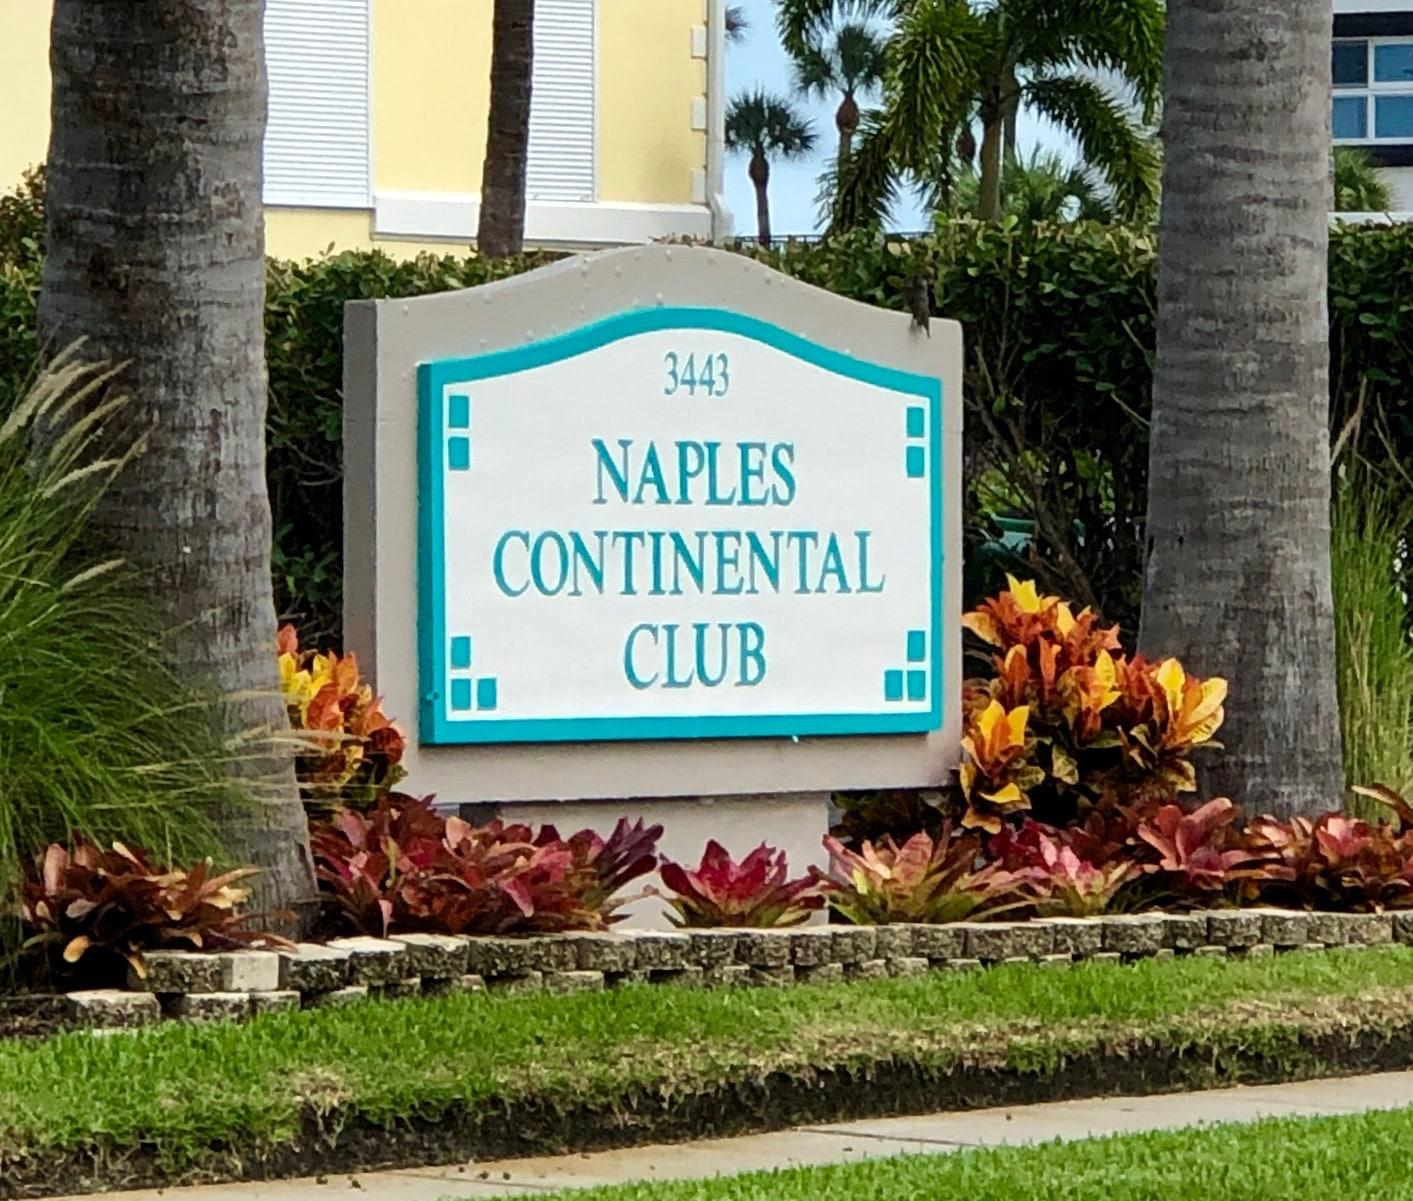 Service Contract for Naples Continental Club